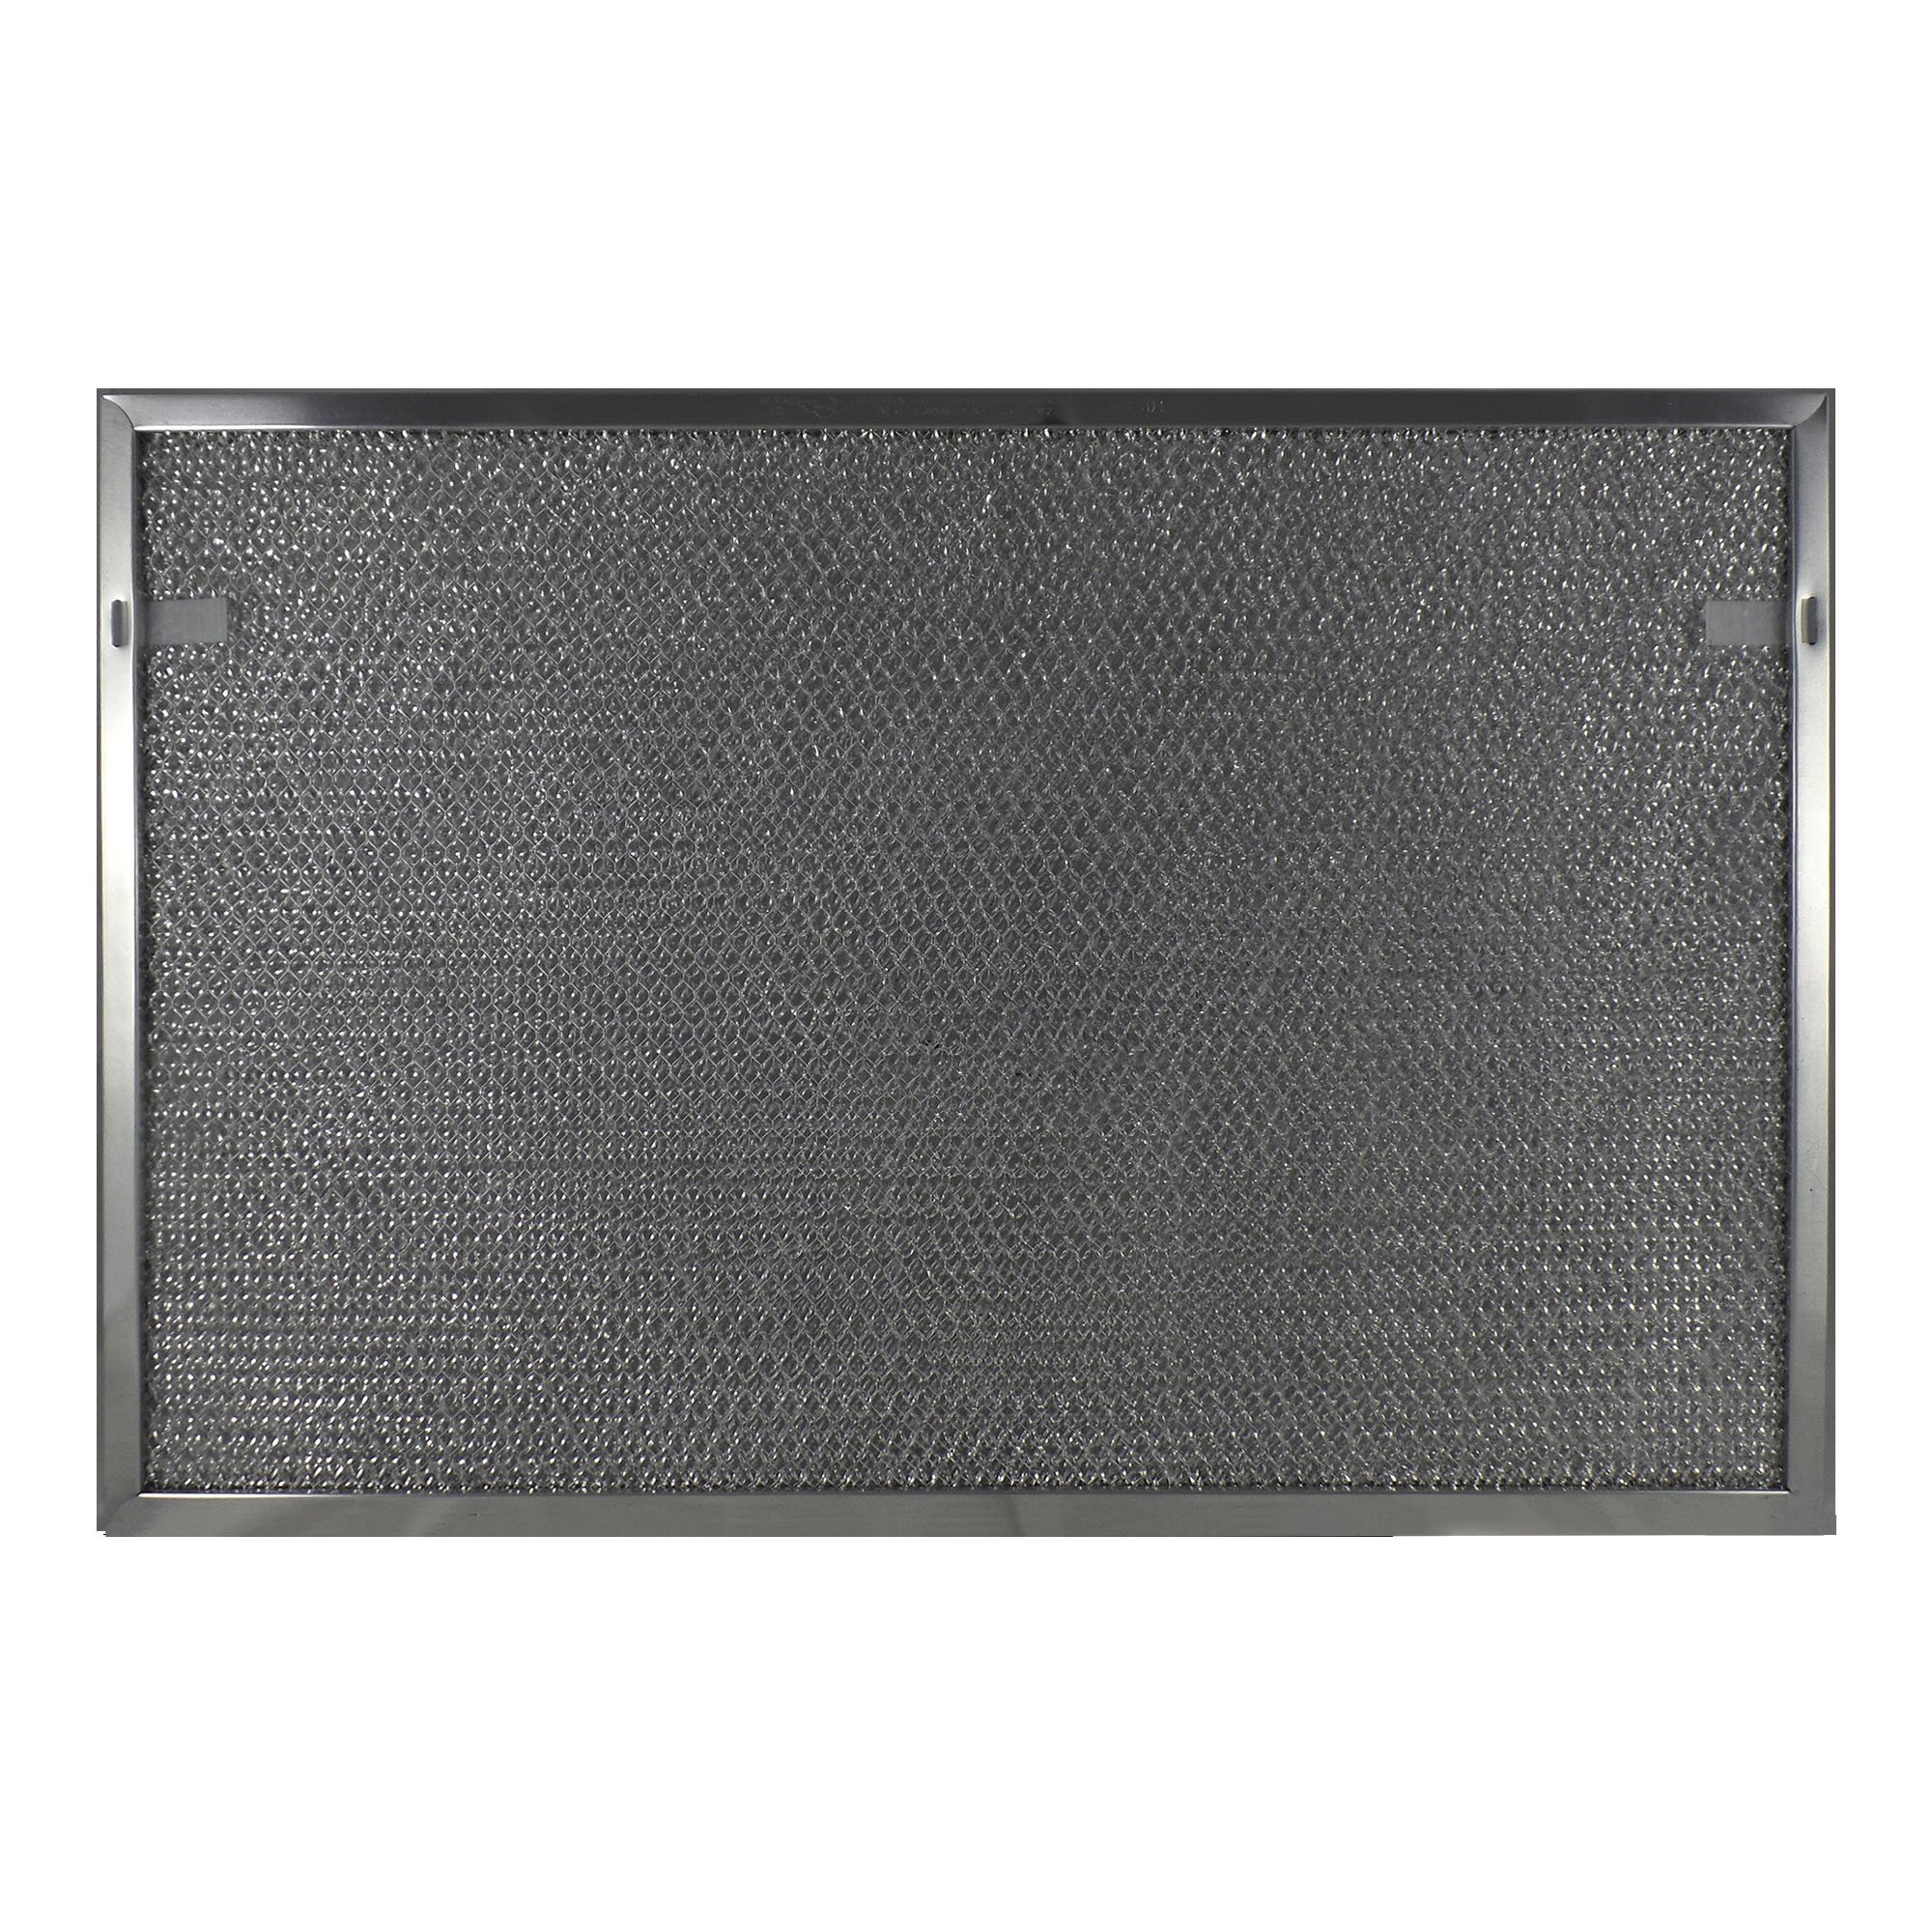 Air Filter Factory 13'' x 20'' x 7/16'' Range Hood Replacement Grease Filter by Air Filter Factory